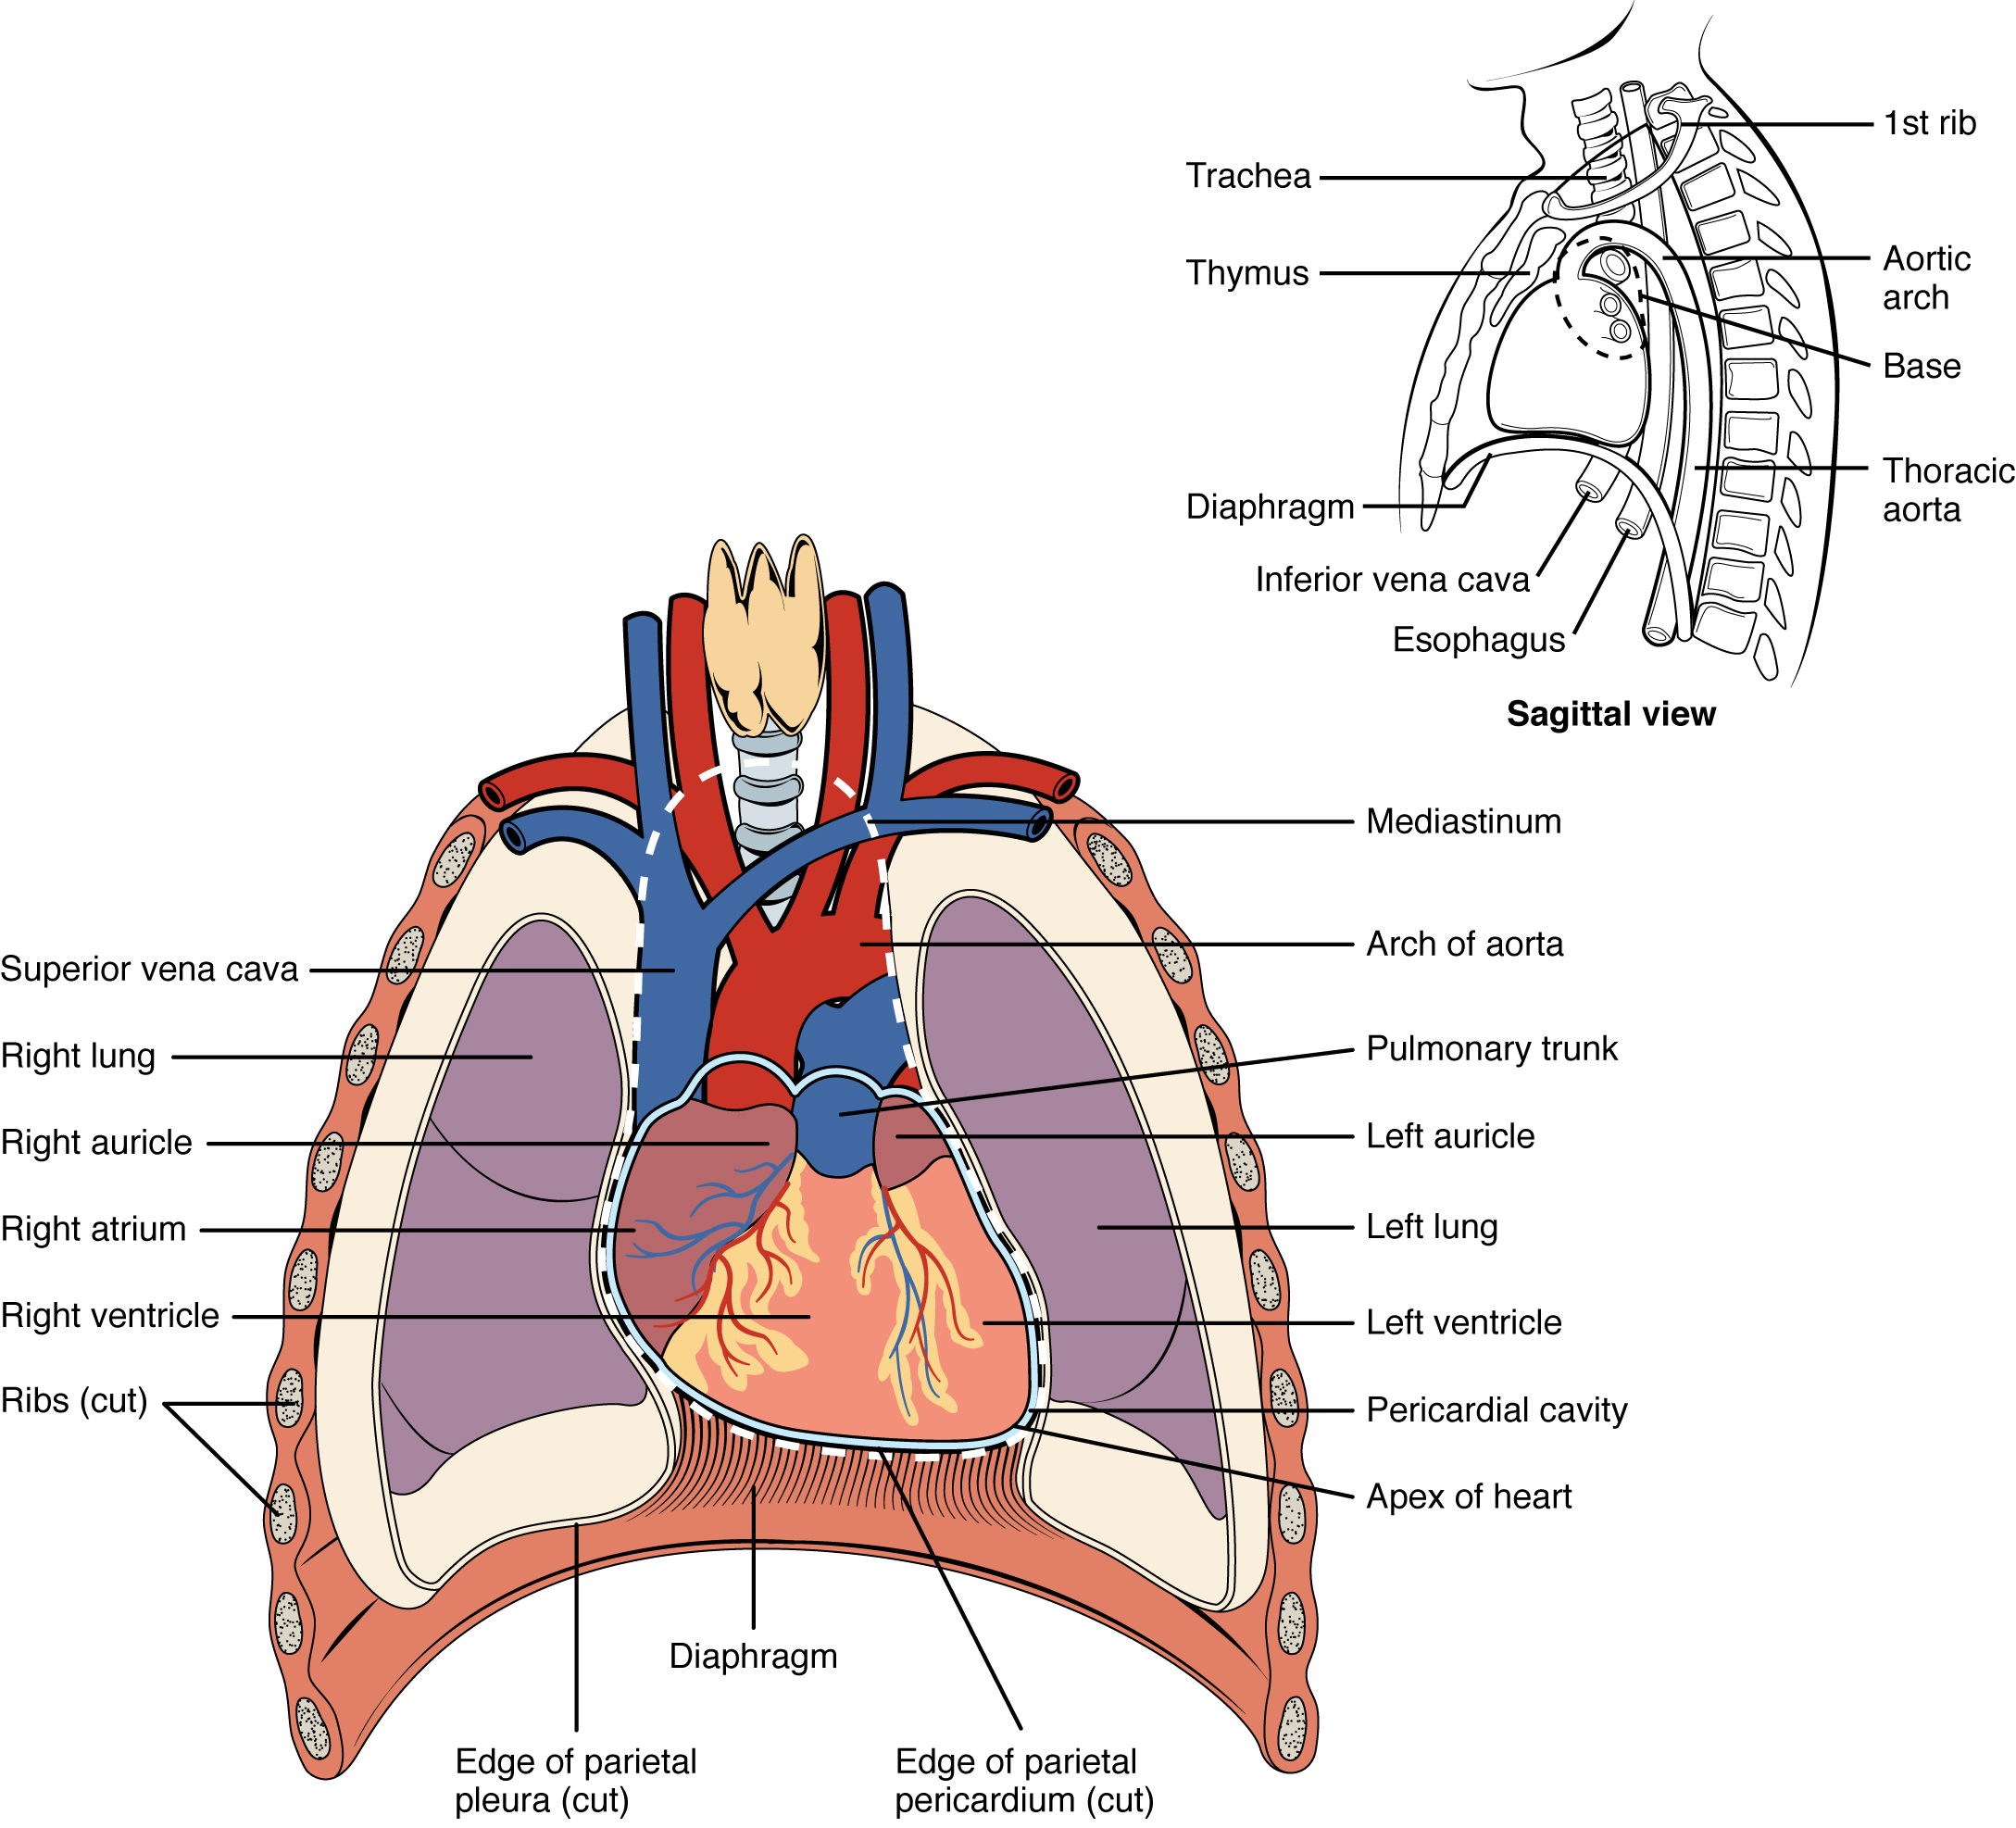 Illustration, with labels, showing position of the heart in the thoracic cavity.